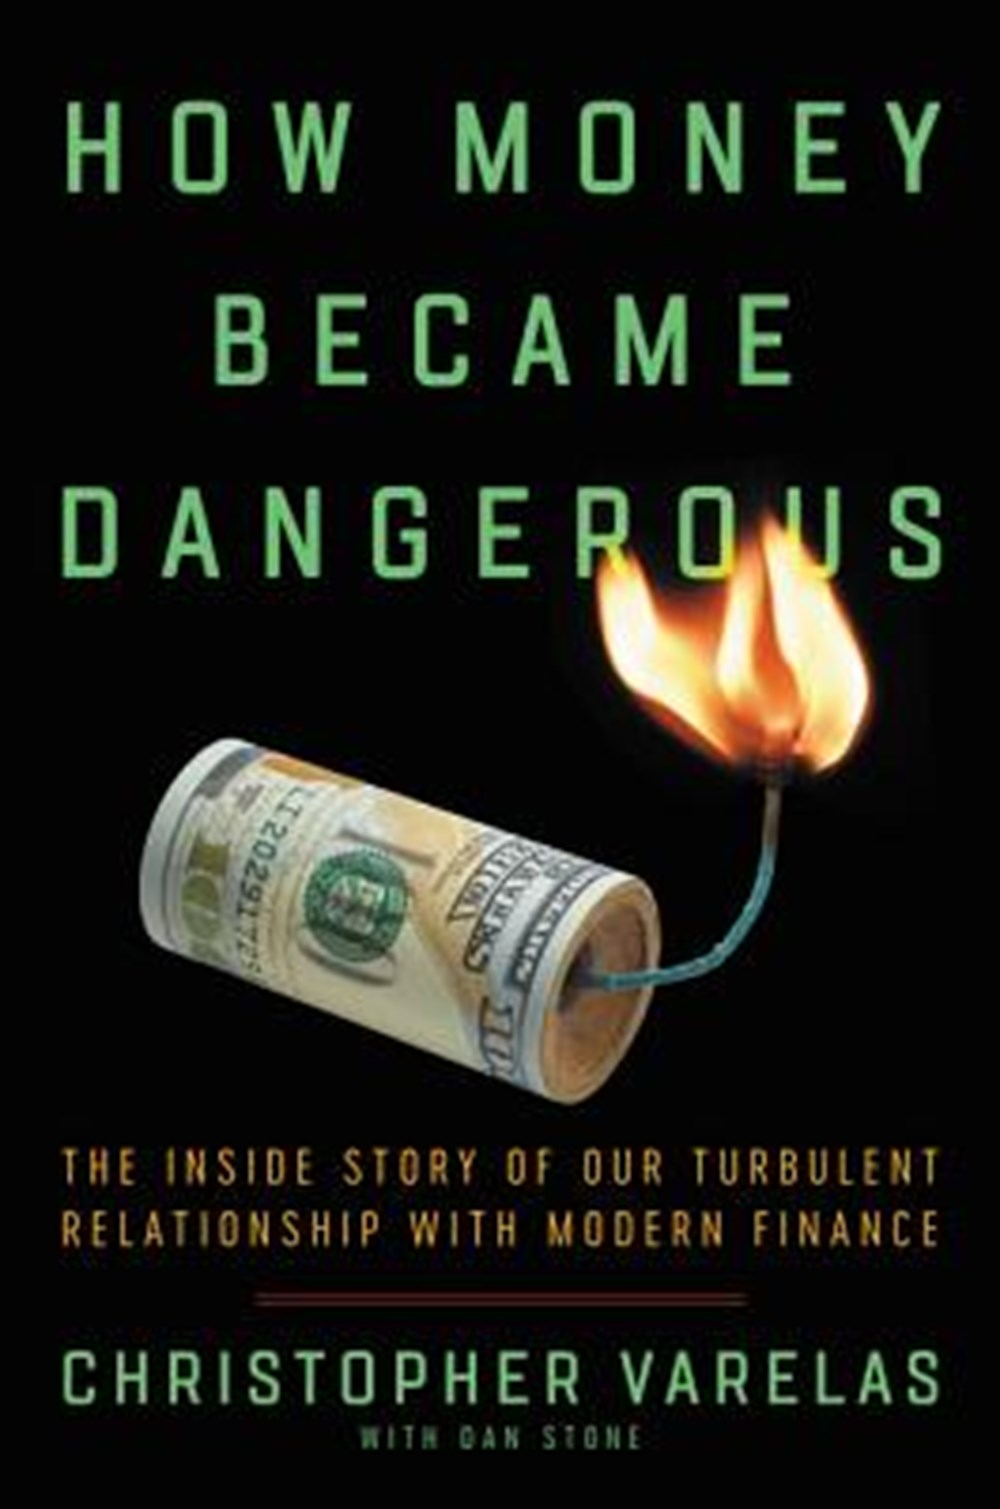 How Money Became Dangerous The Inside Story of Our Turbulent Relationship with Modern Finance